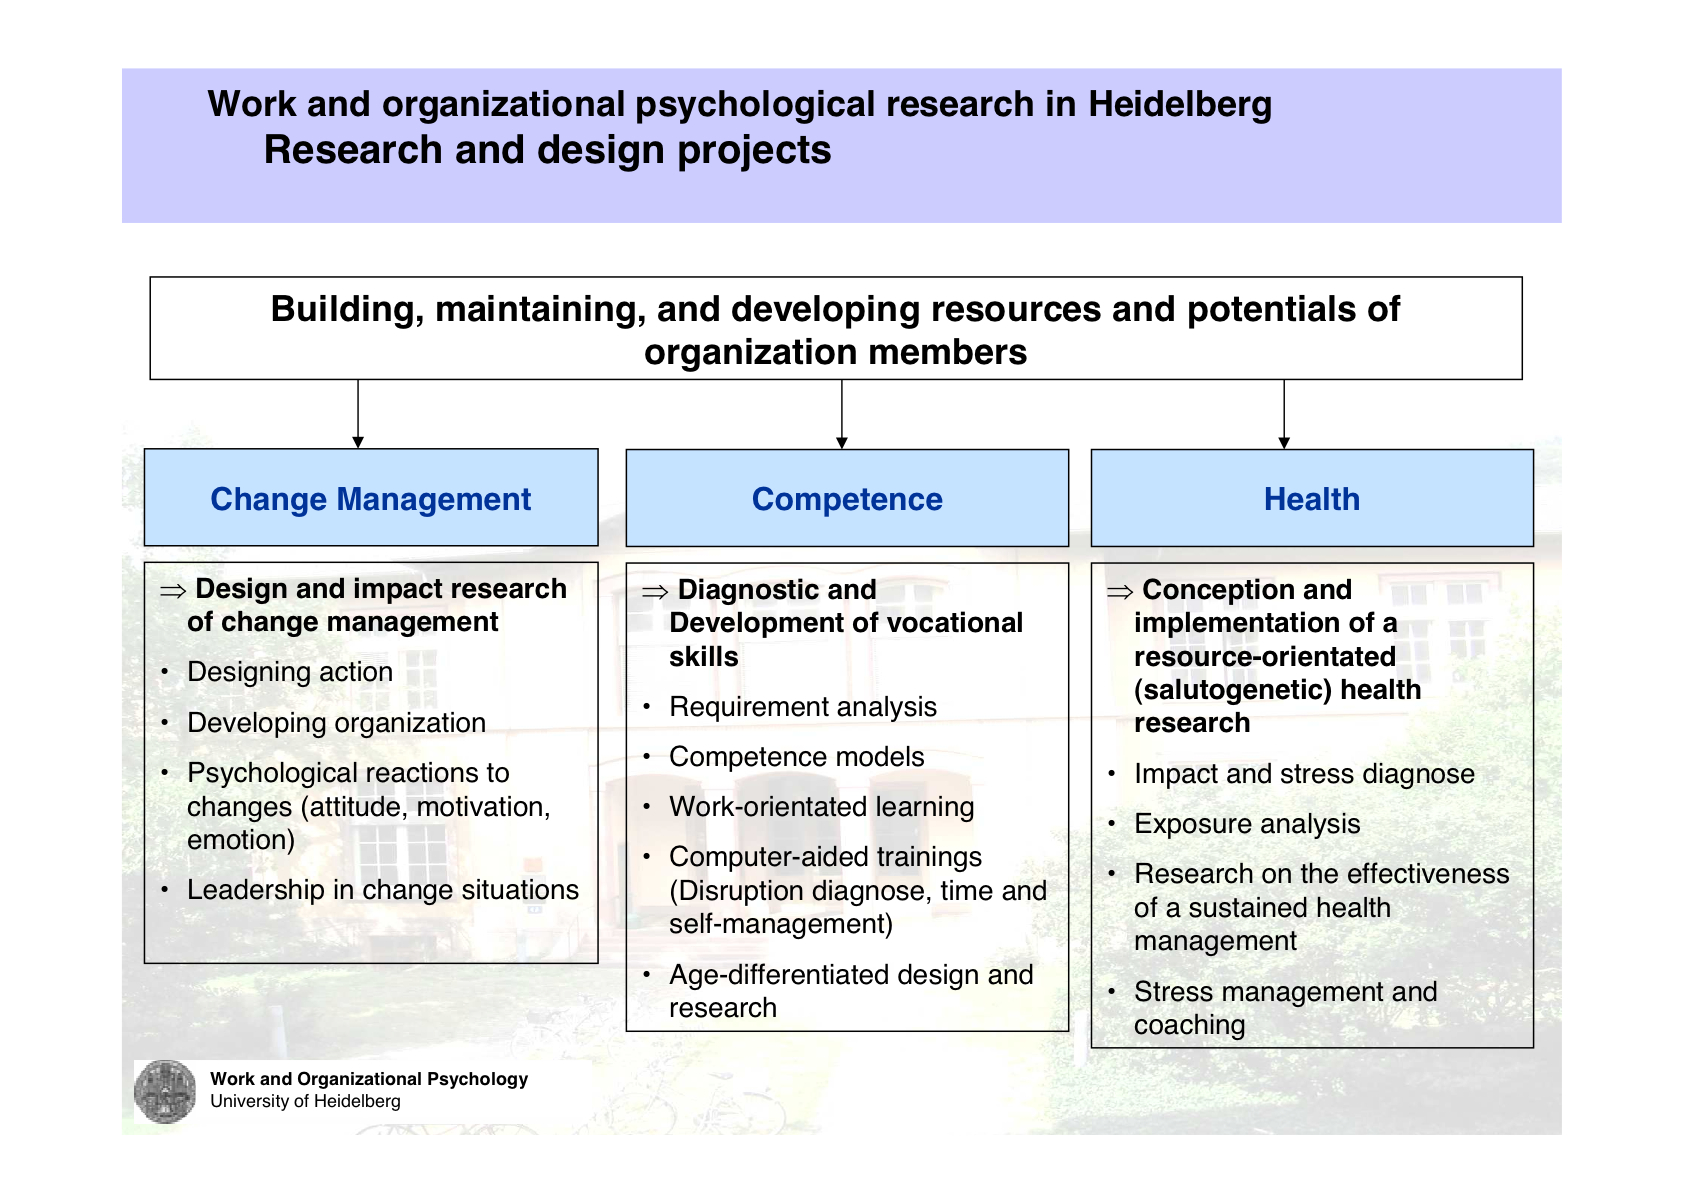 organisation psychology The aim of this course is to develop your psychological knowledge in the areas of  cross cultural psychology, organizational psychology and professional issues.